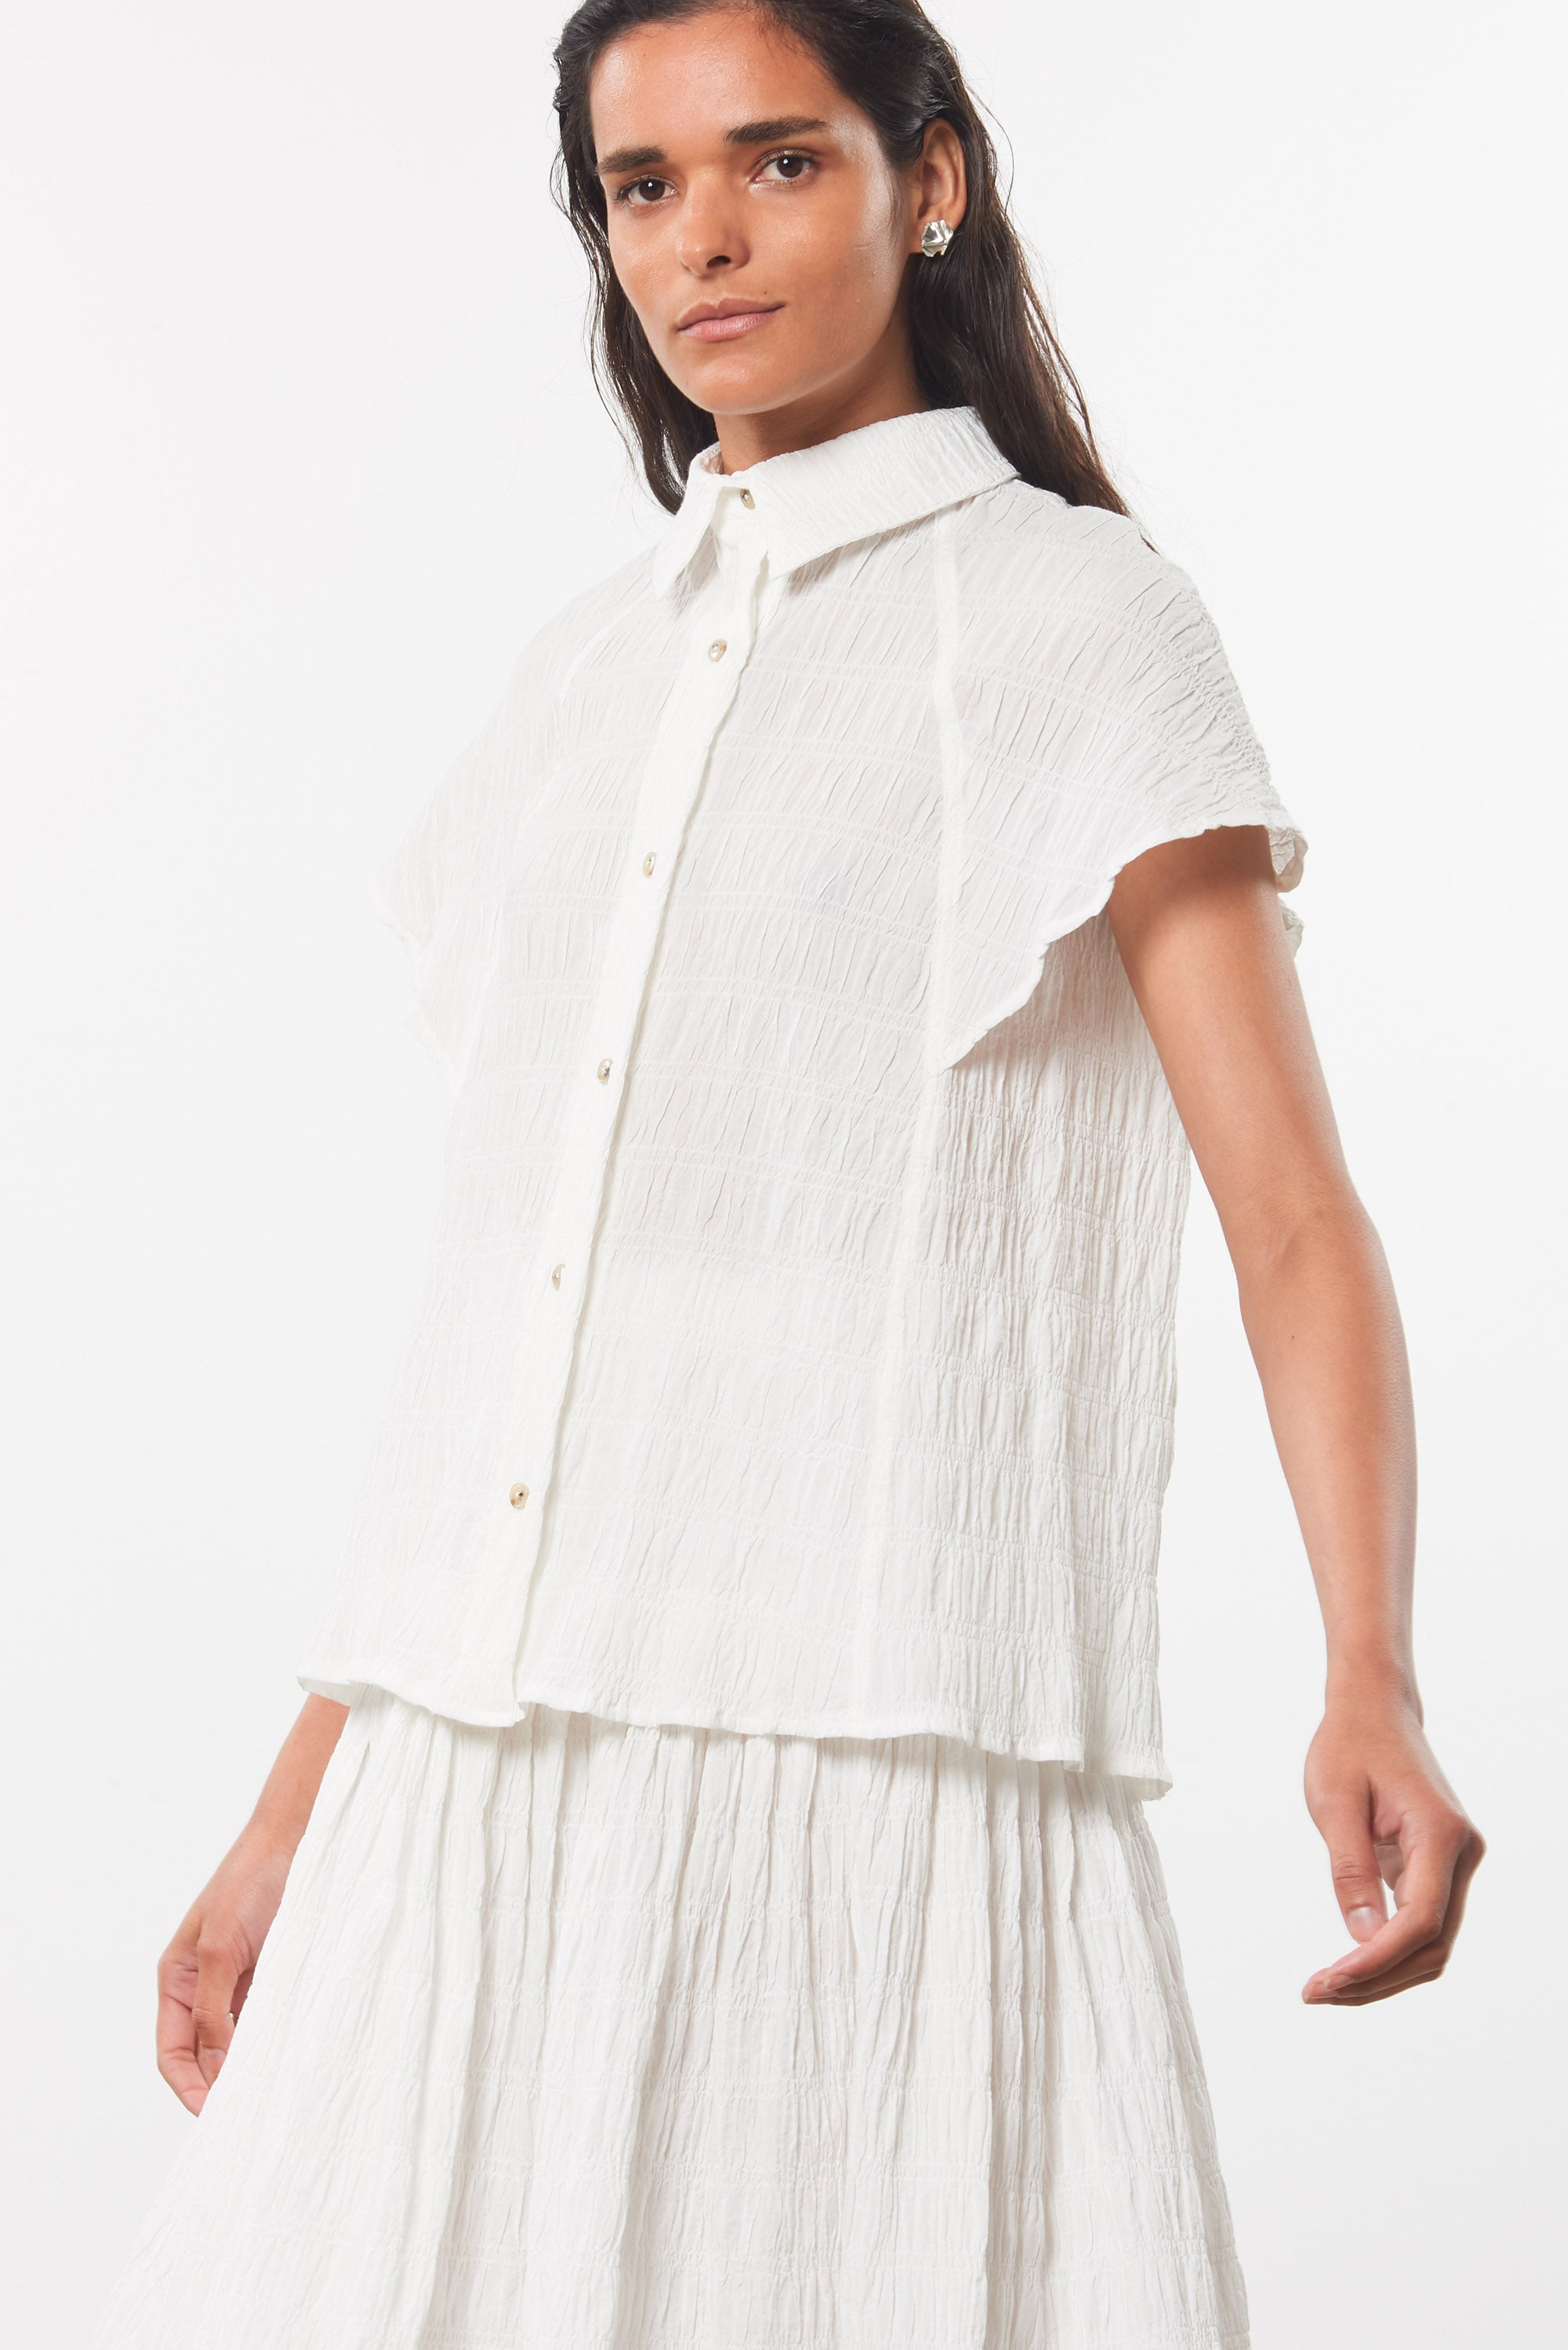 Mara Hoffman White Phebe Top in organic cotton (front side detail)